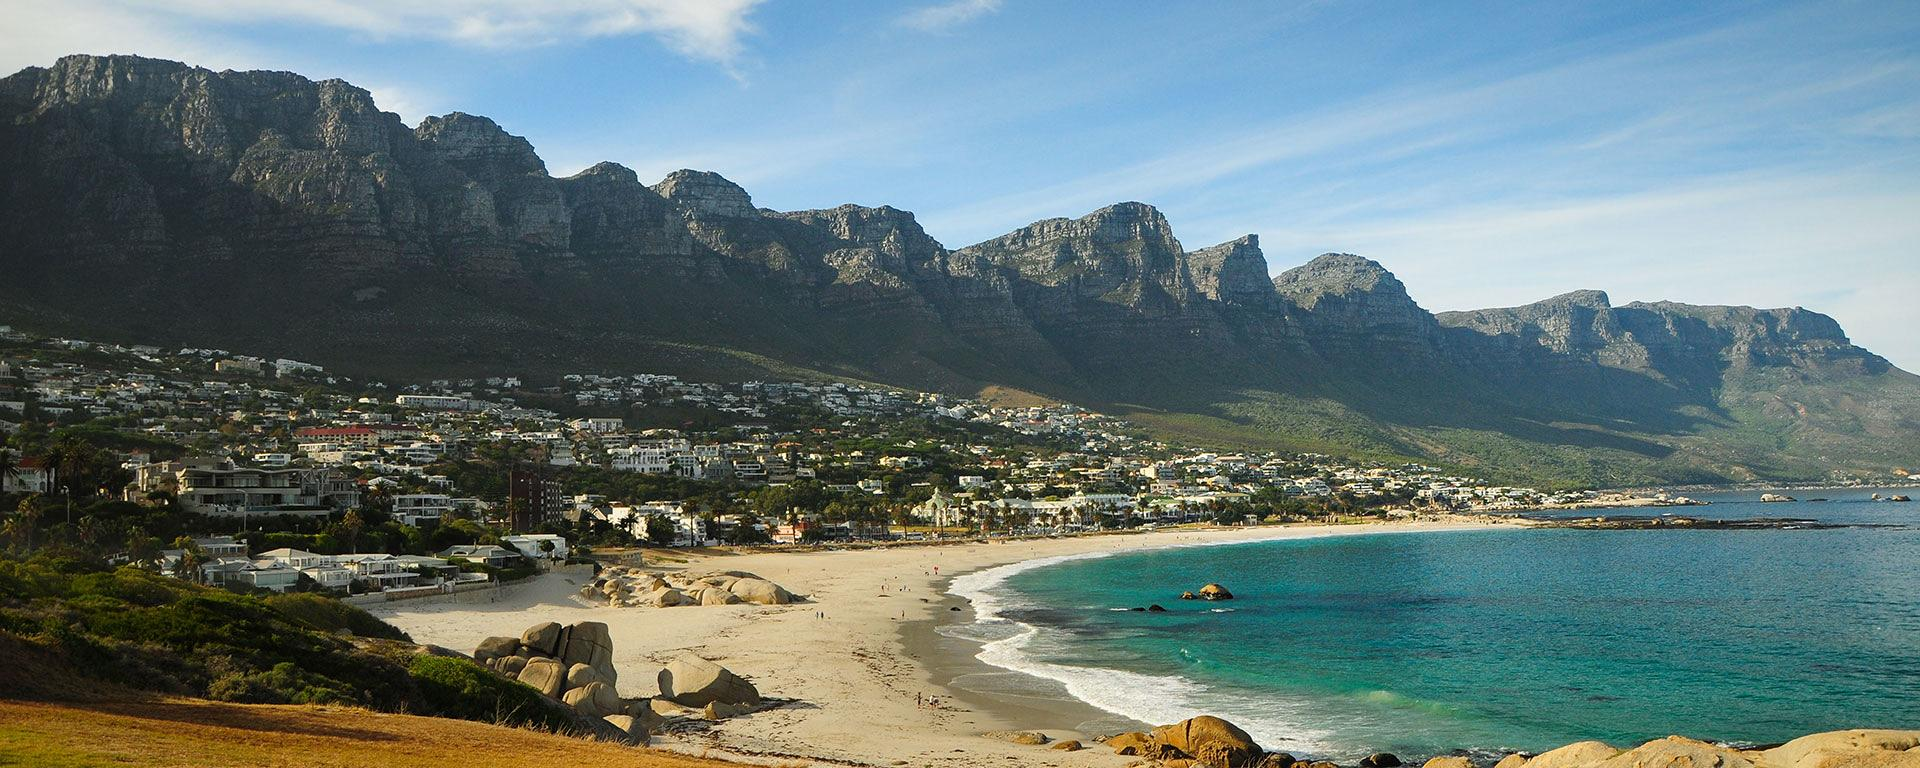 Ten reasons to visit South Africa